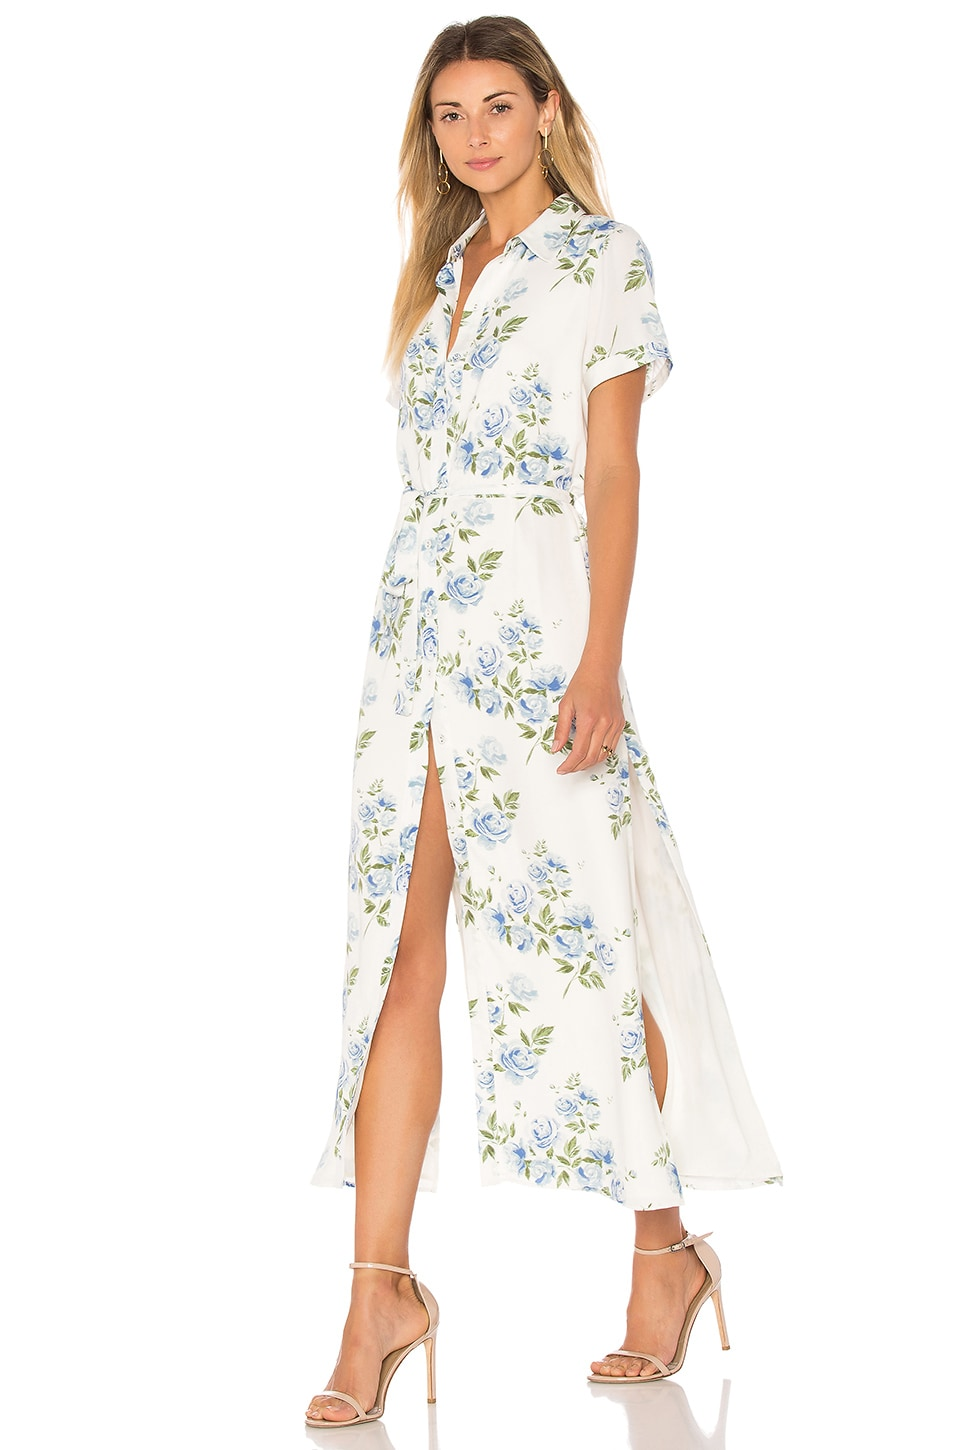 L'Academie The Shirt Dress in Blue Floral